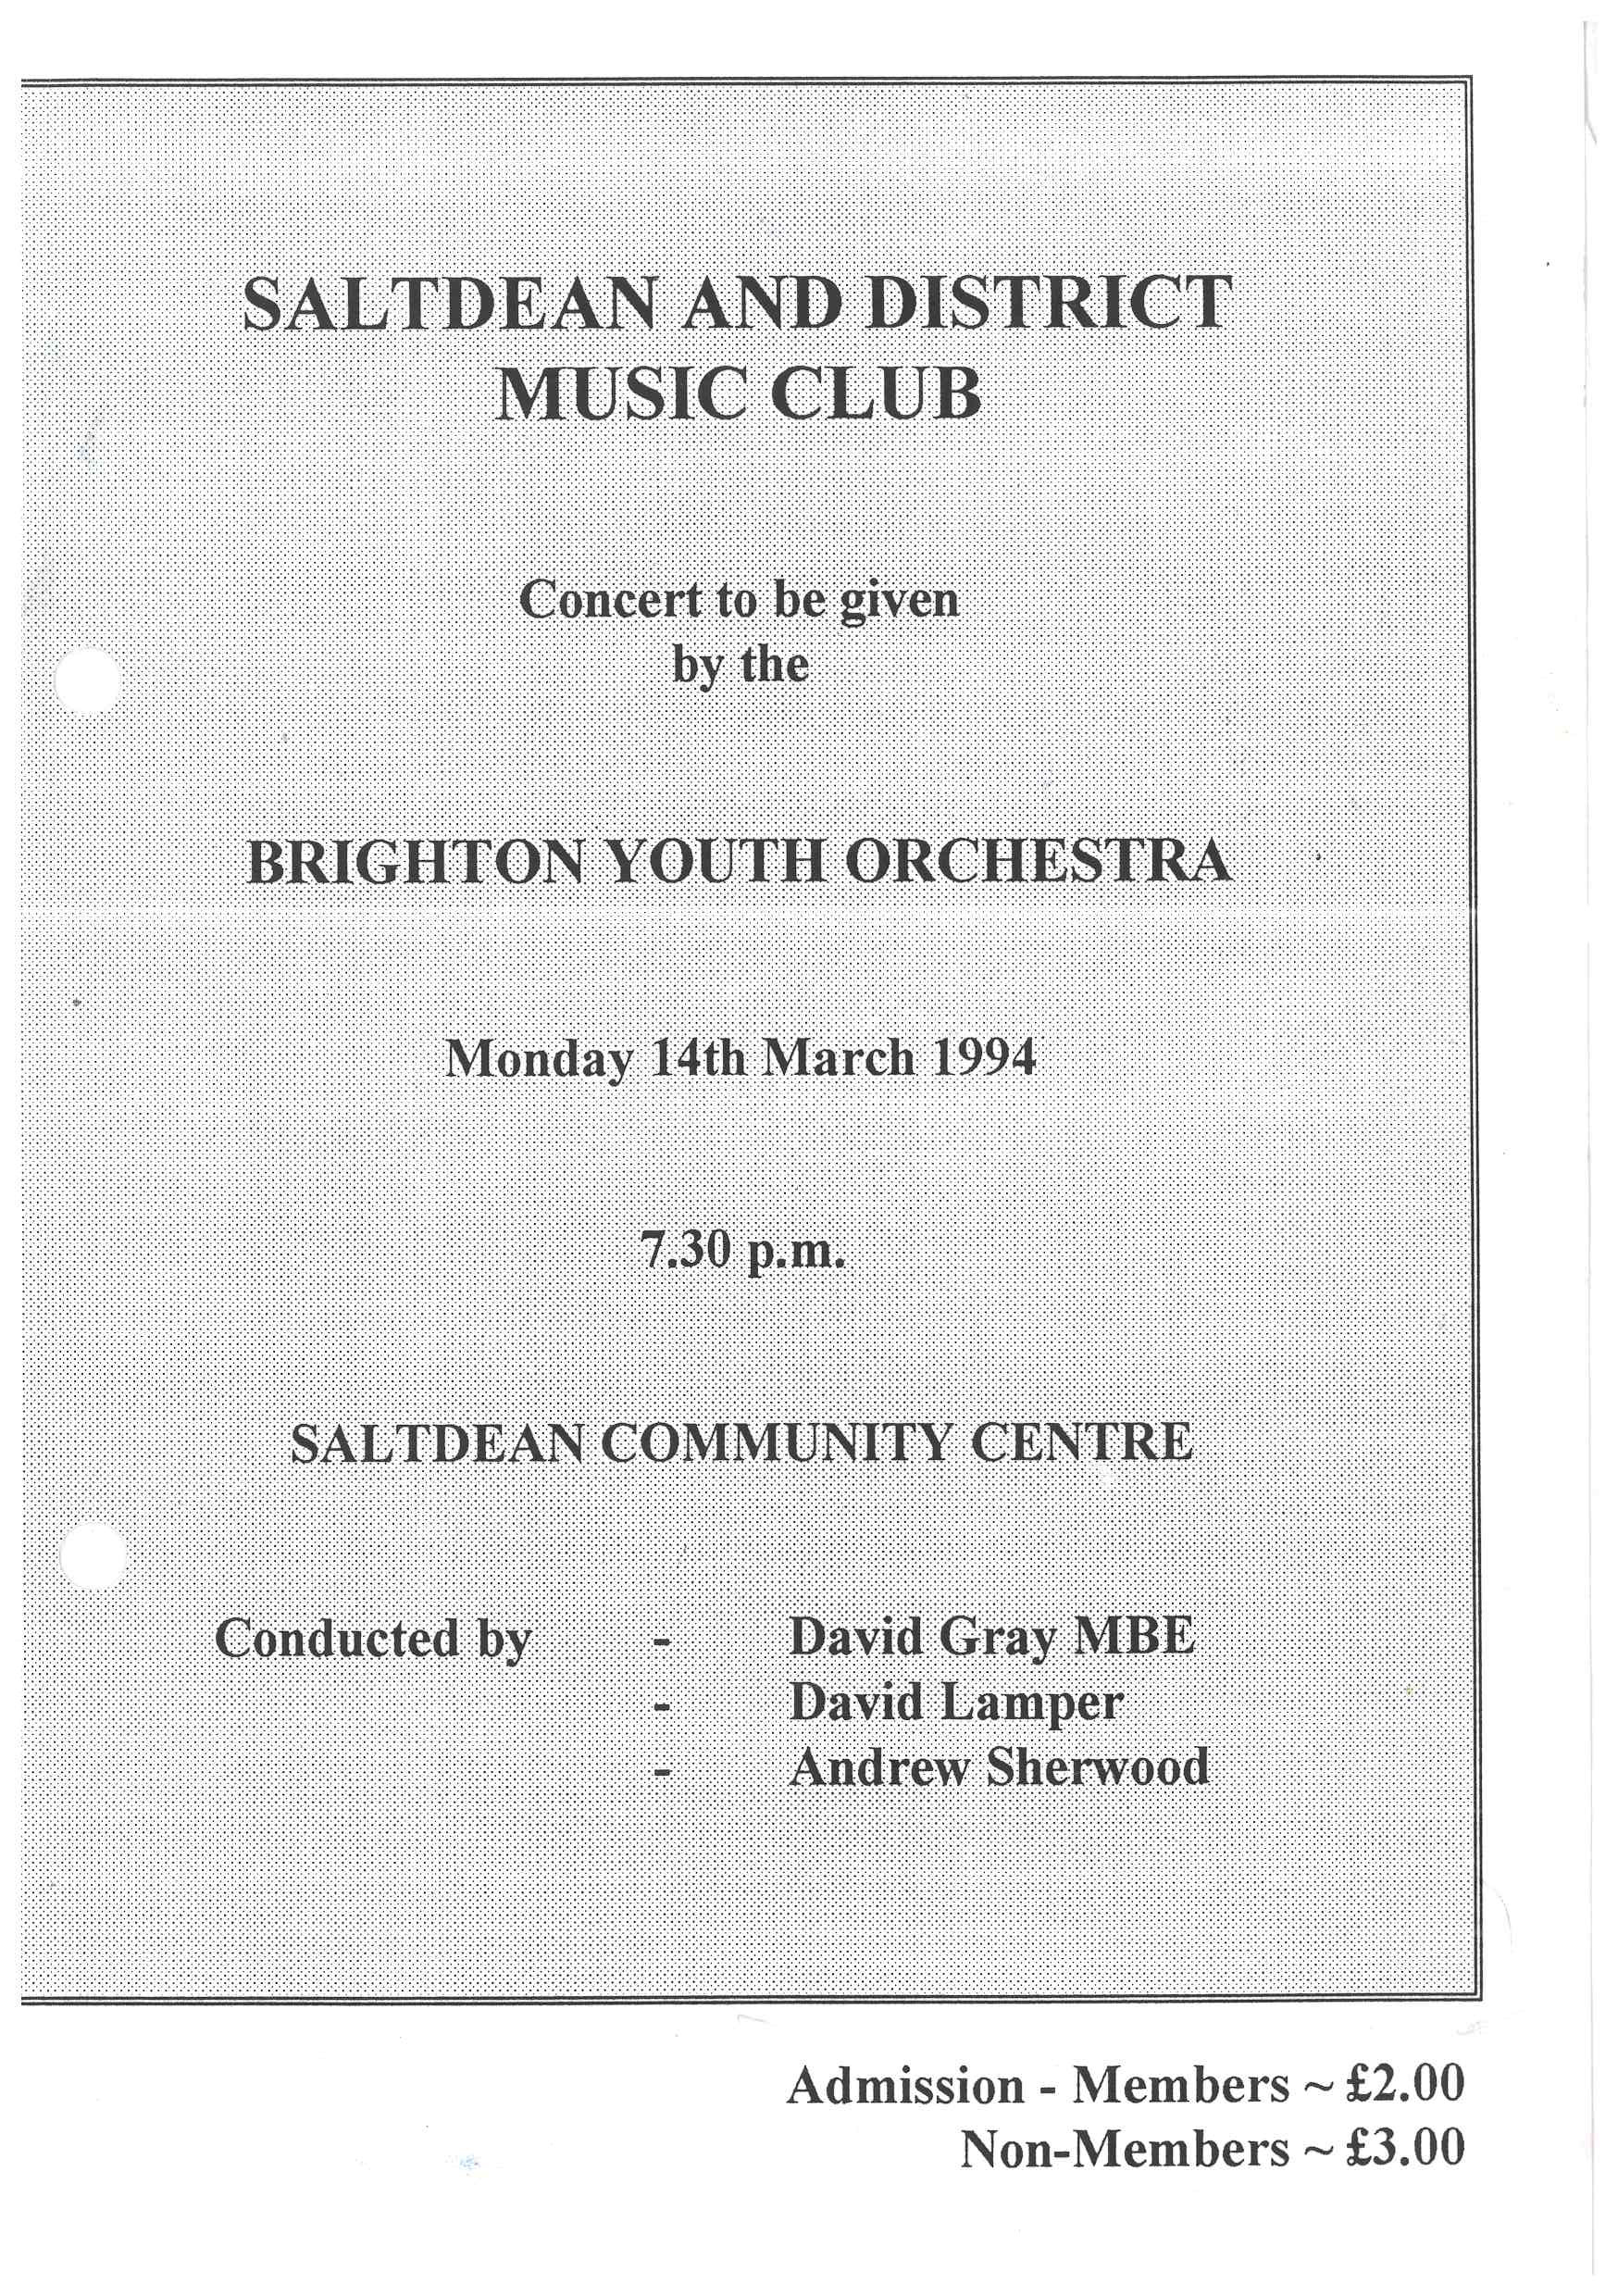 00329-BYO Saltdean Community Centre, 14th March 1994.jpg